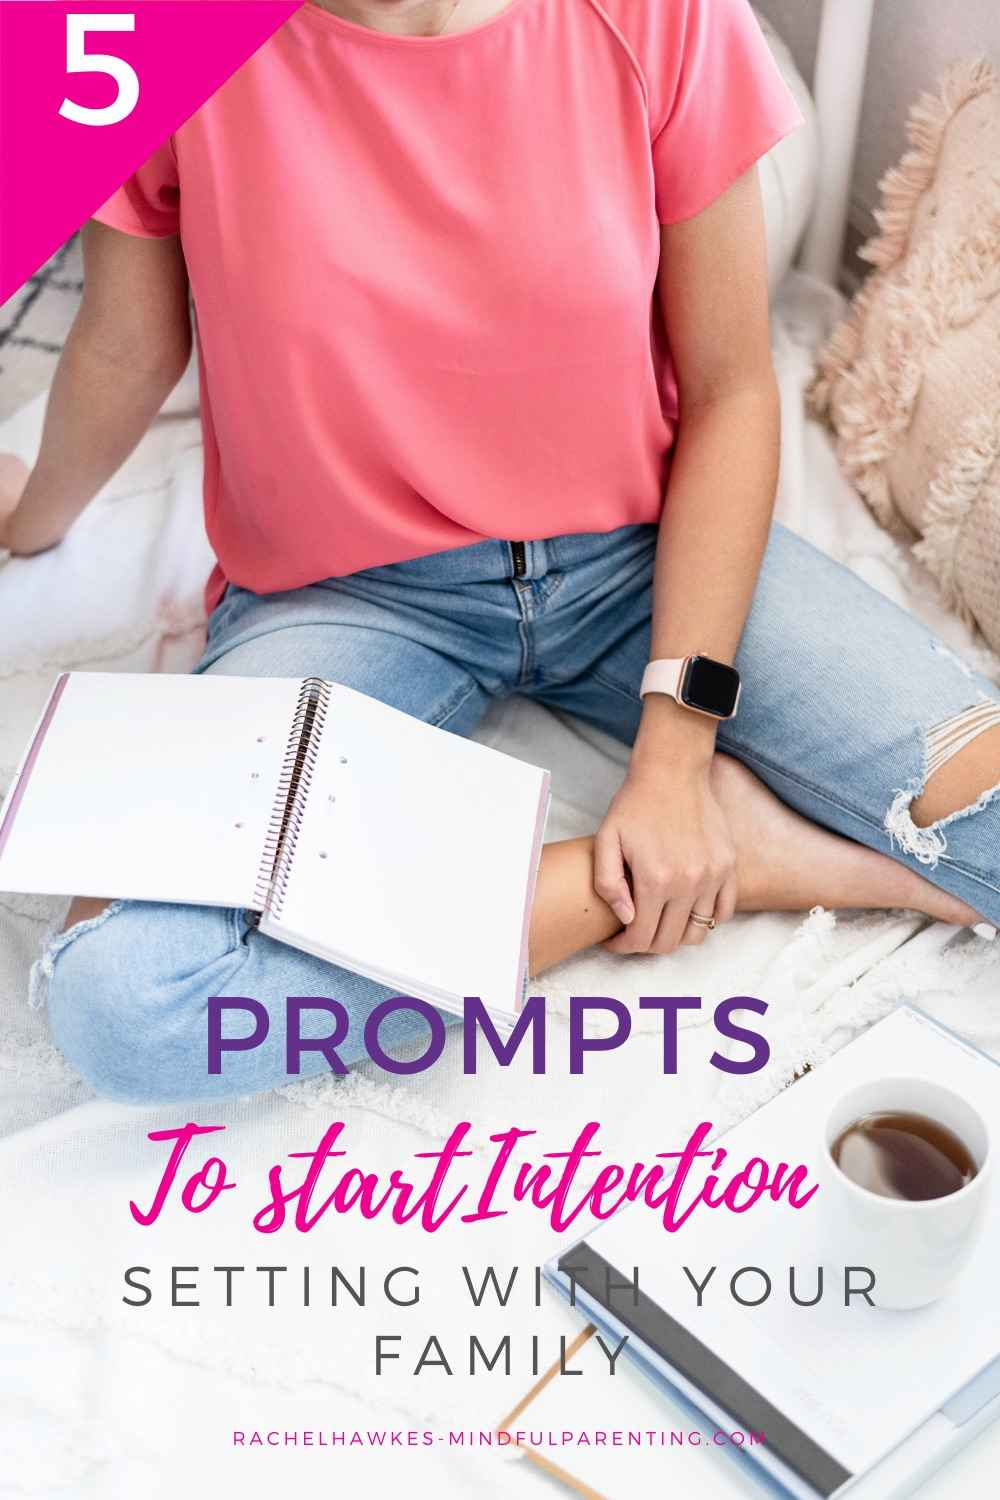 Prompts for intention setting